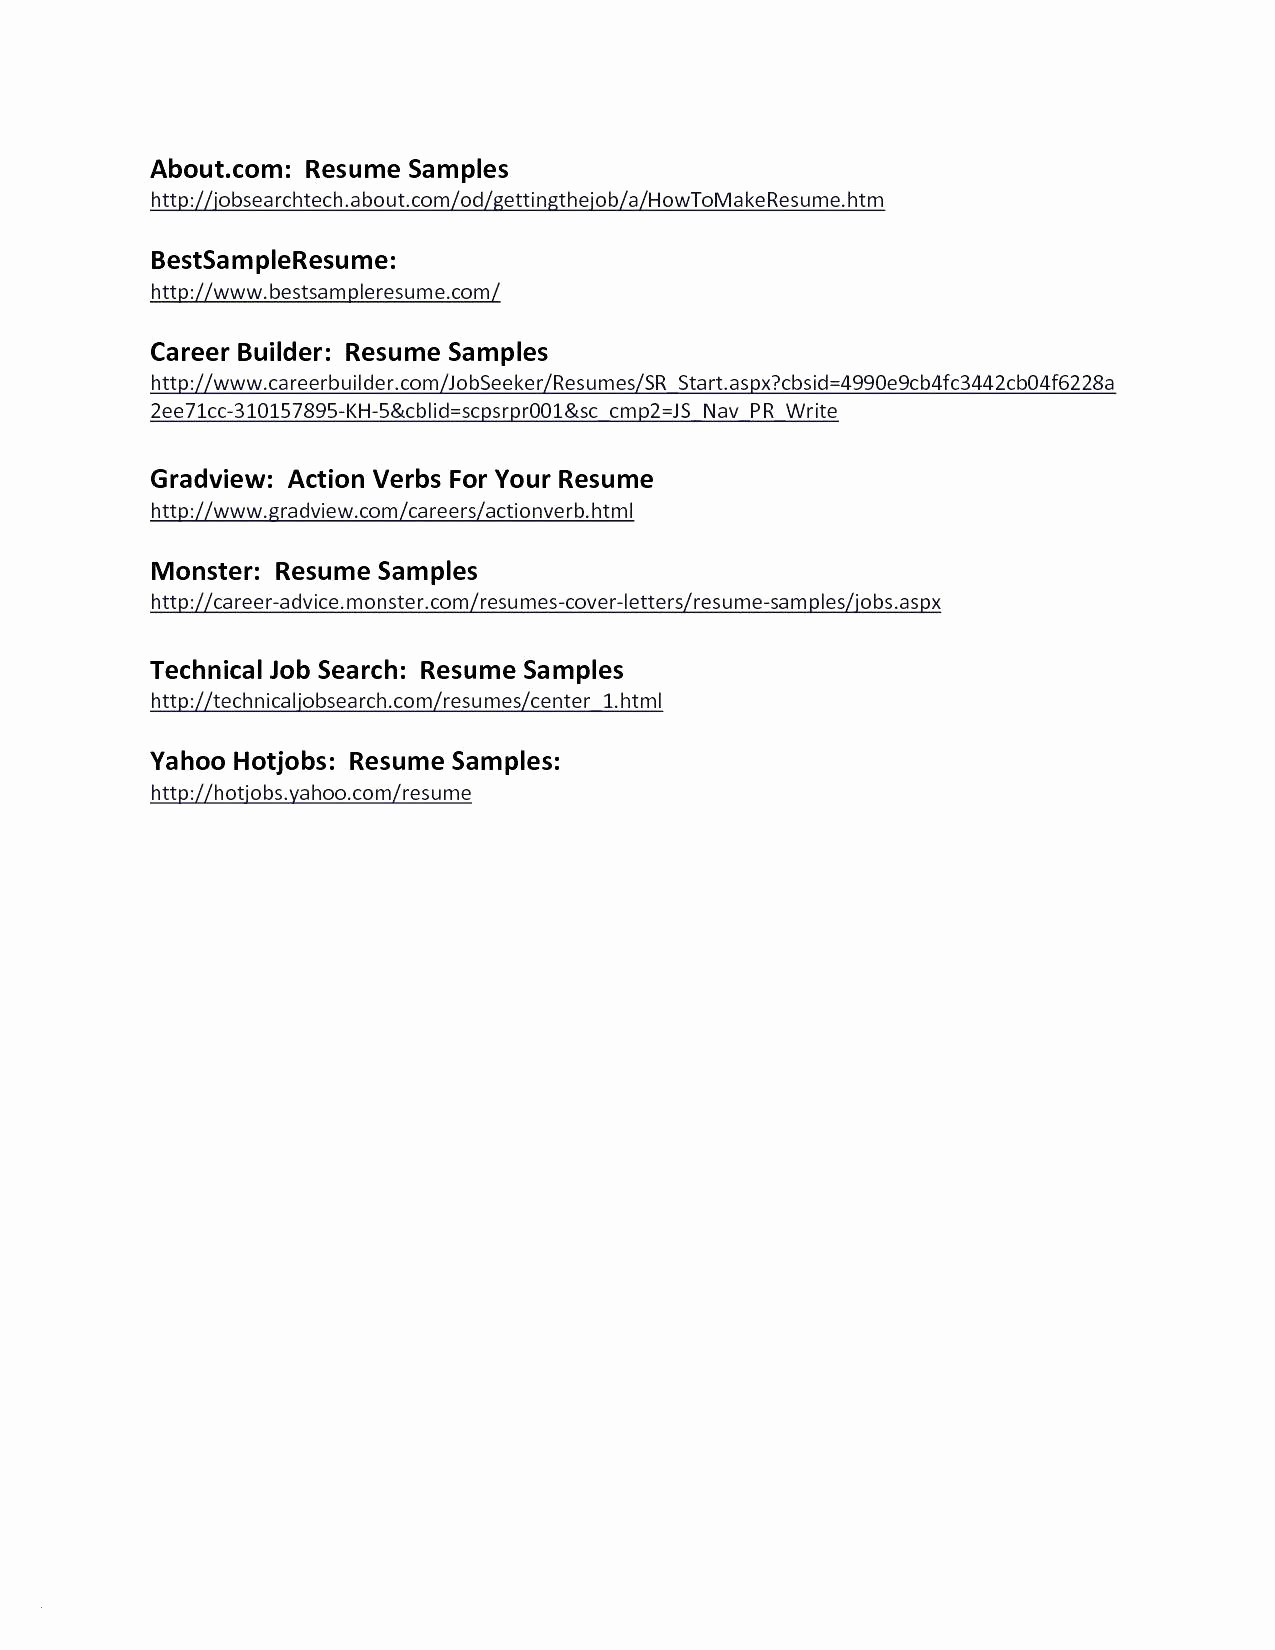 Legal Secretary Resume Template - Resume Cover Letter Legal assistant New Sample Legal assistant Cover